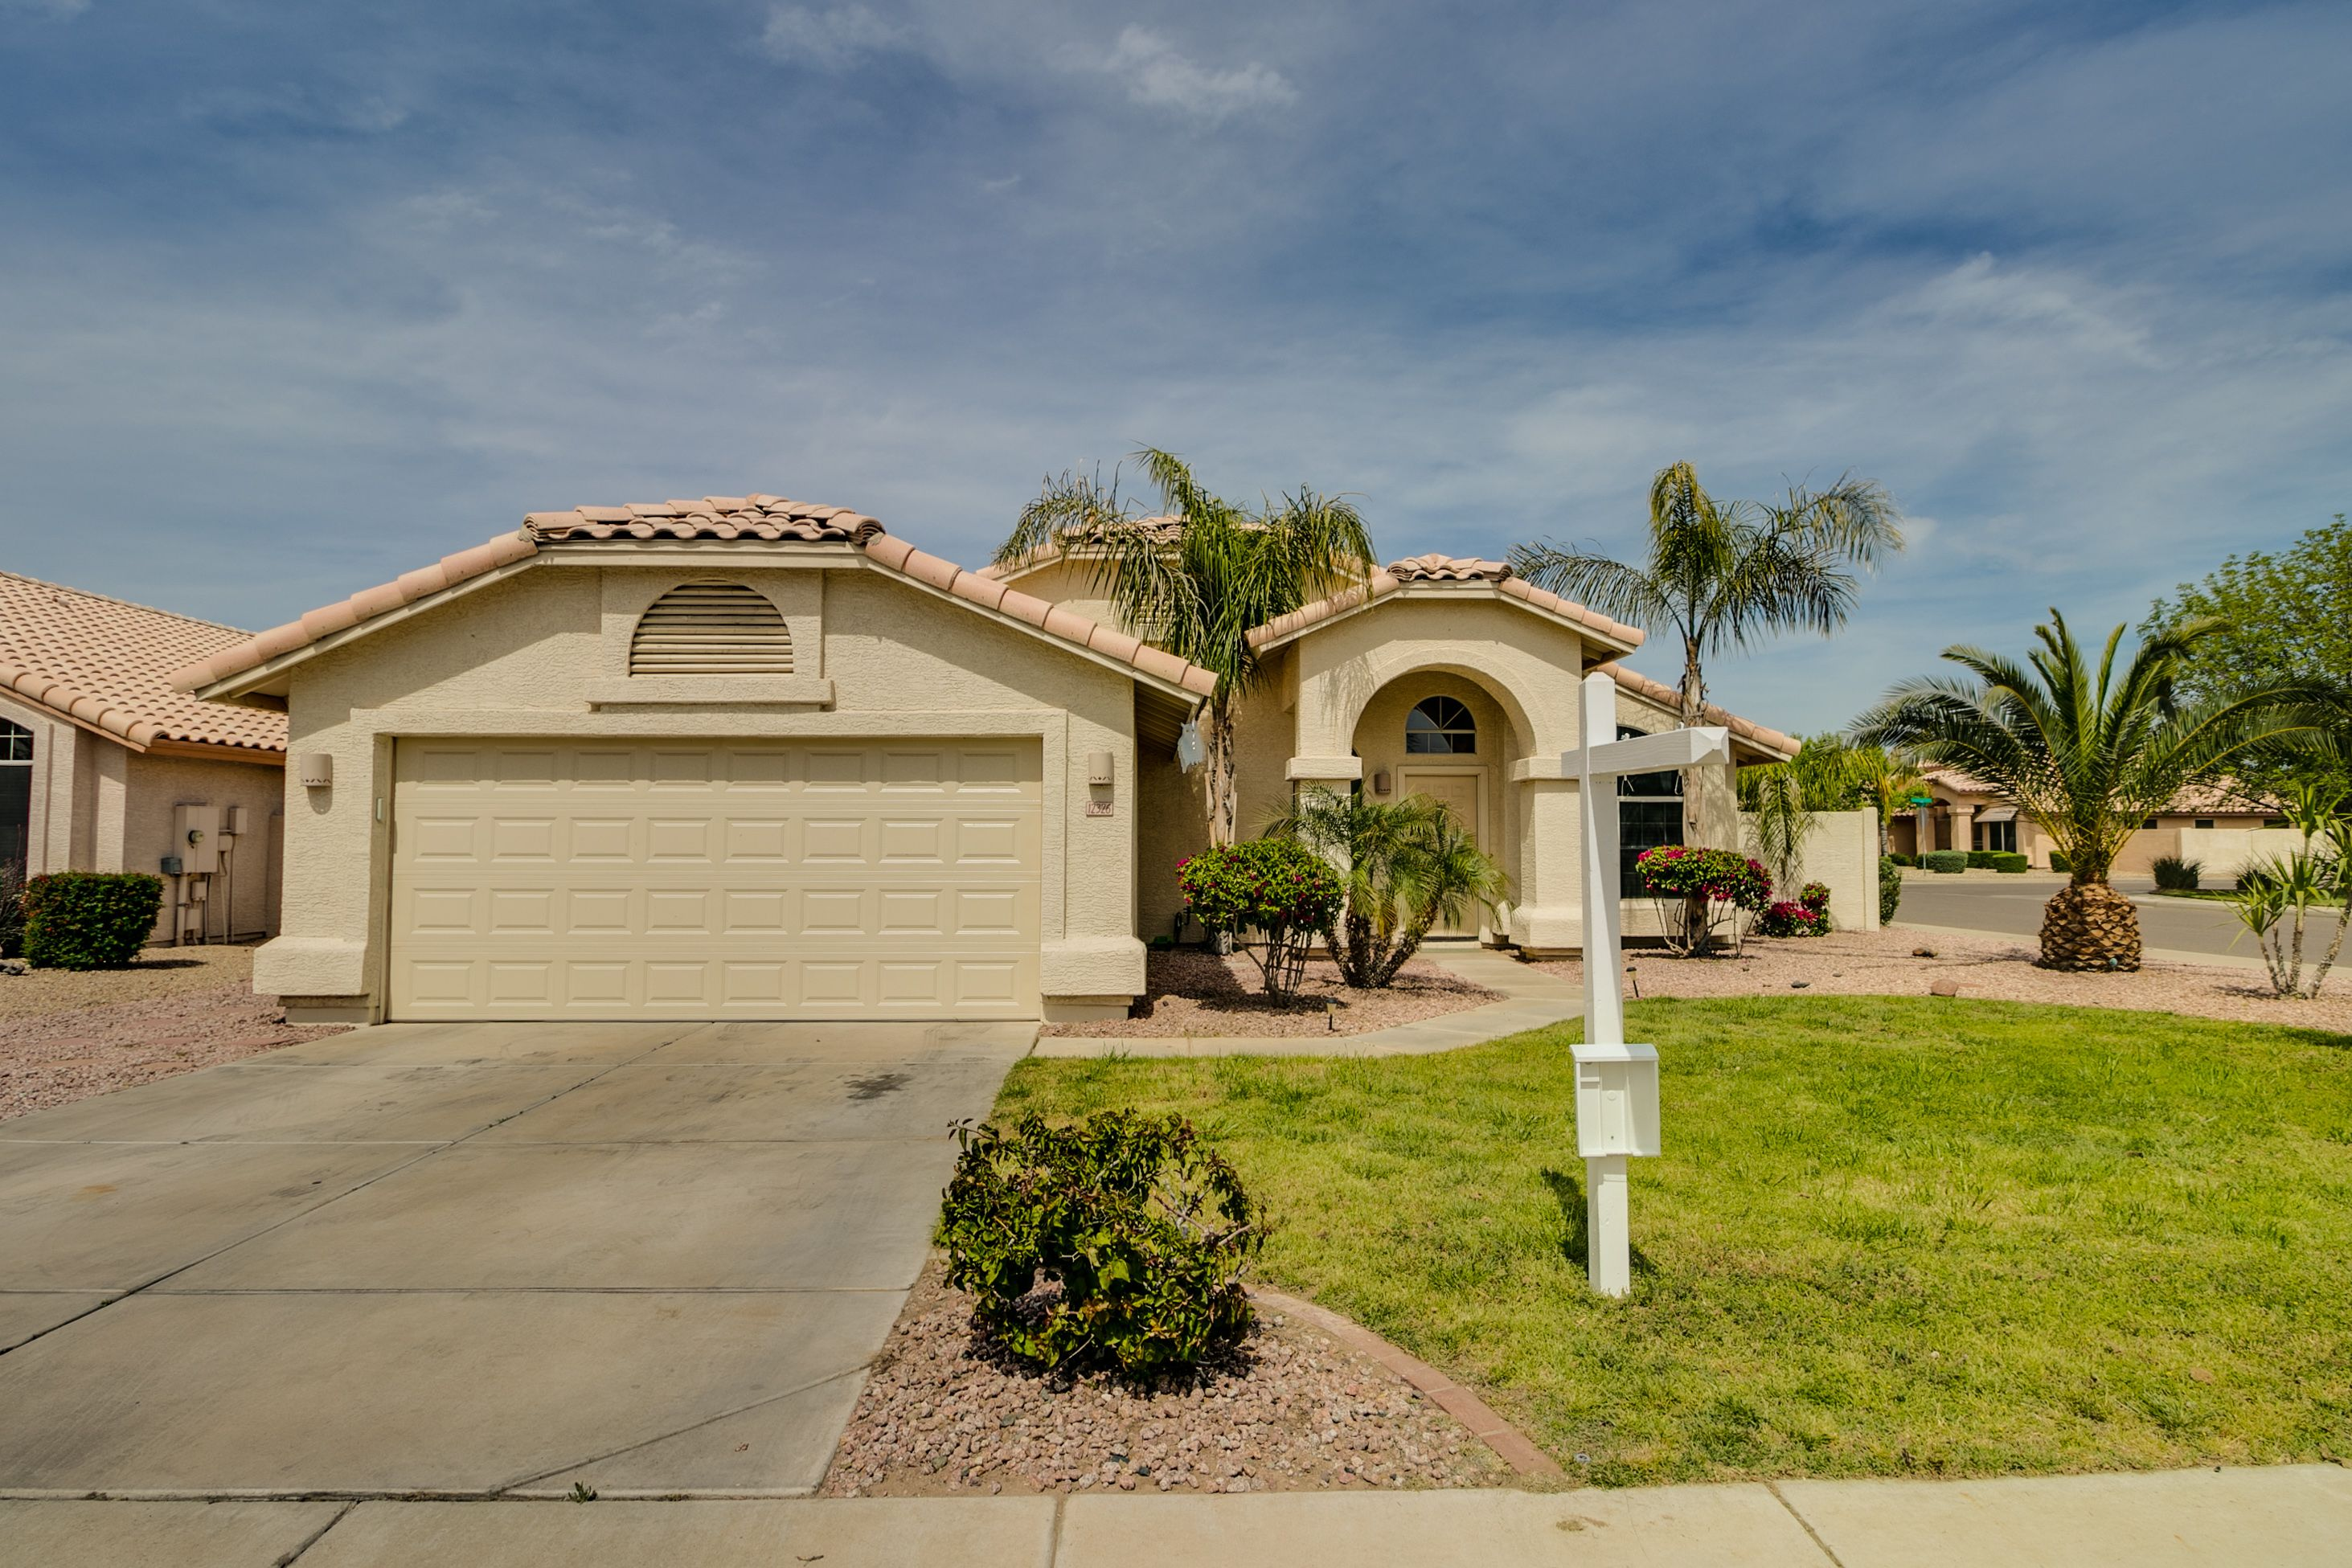 Property Address 12326 W Windsor Ave Avondale Az 85392 4 Beds 2 Baths Private Pool Polished Travertine Floor Travertine Floors Avondale House Styles